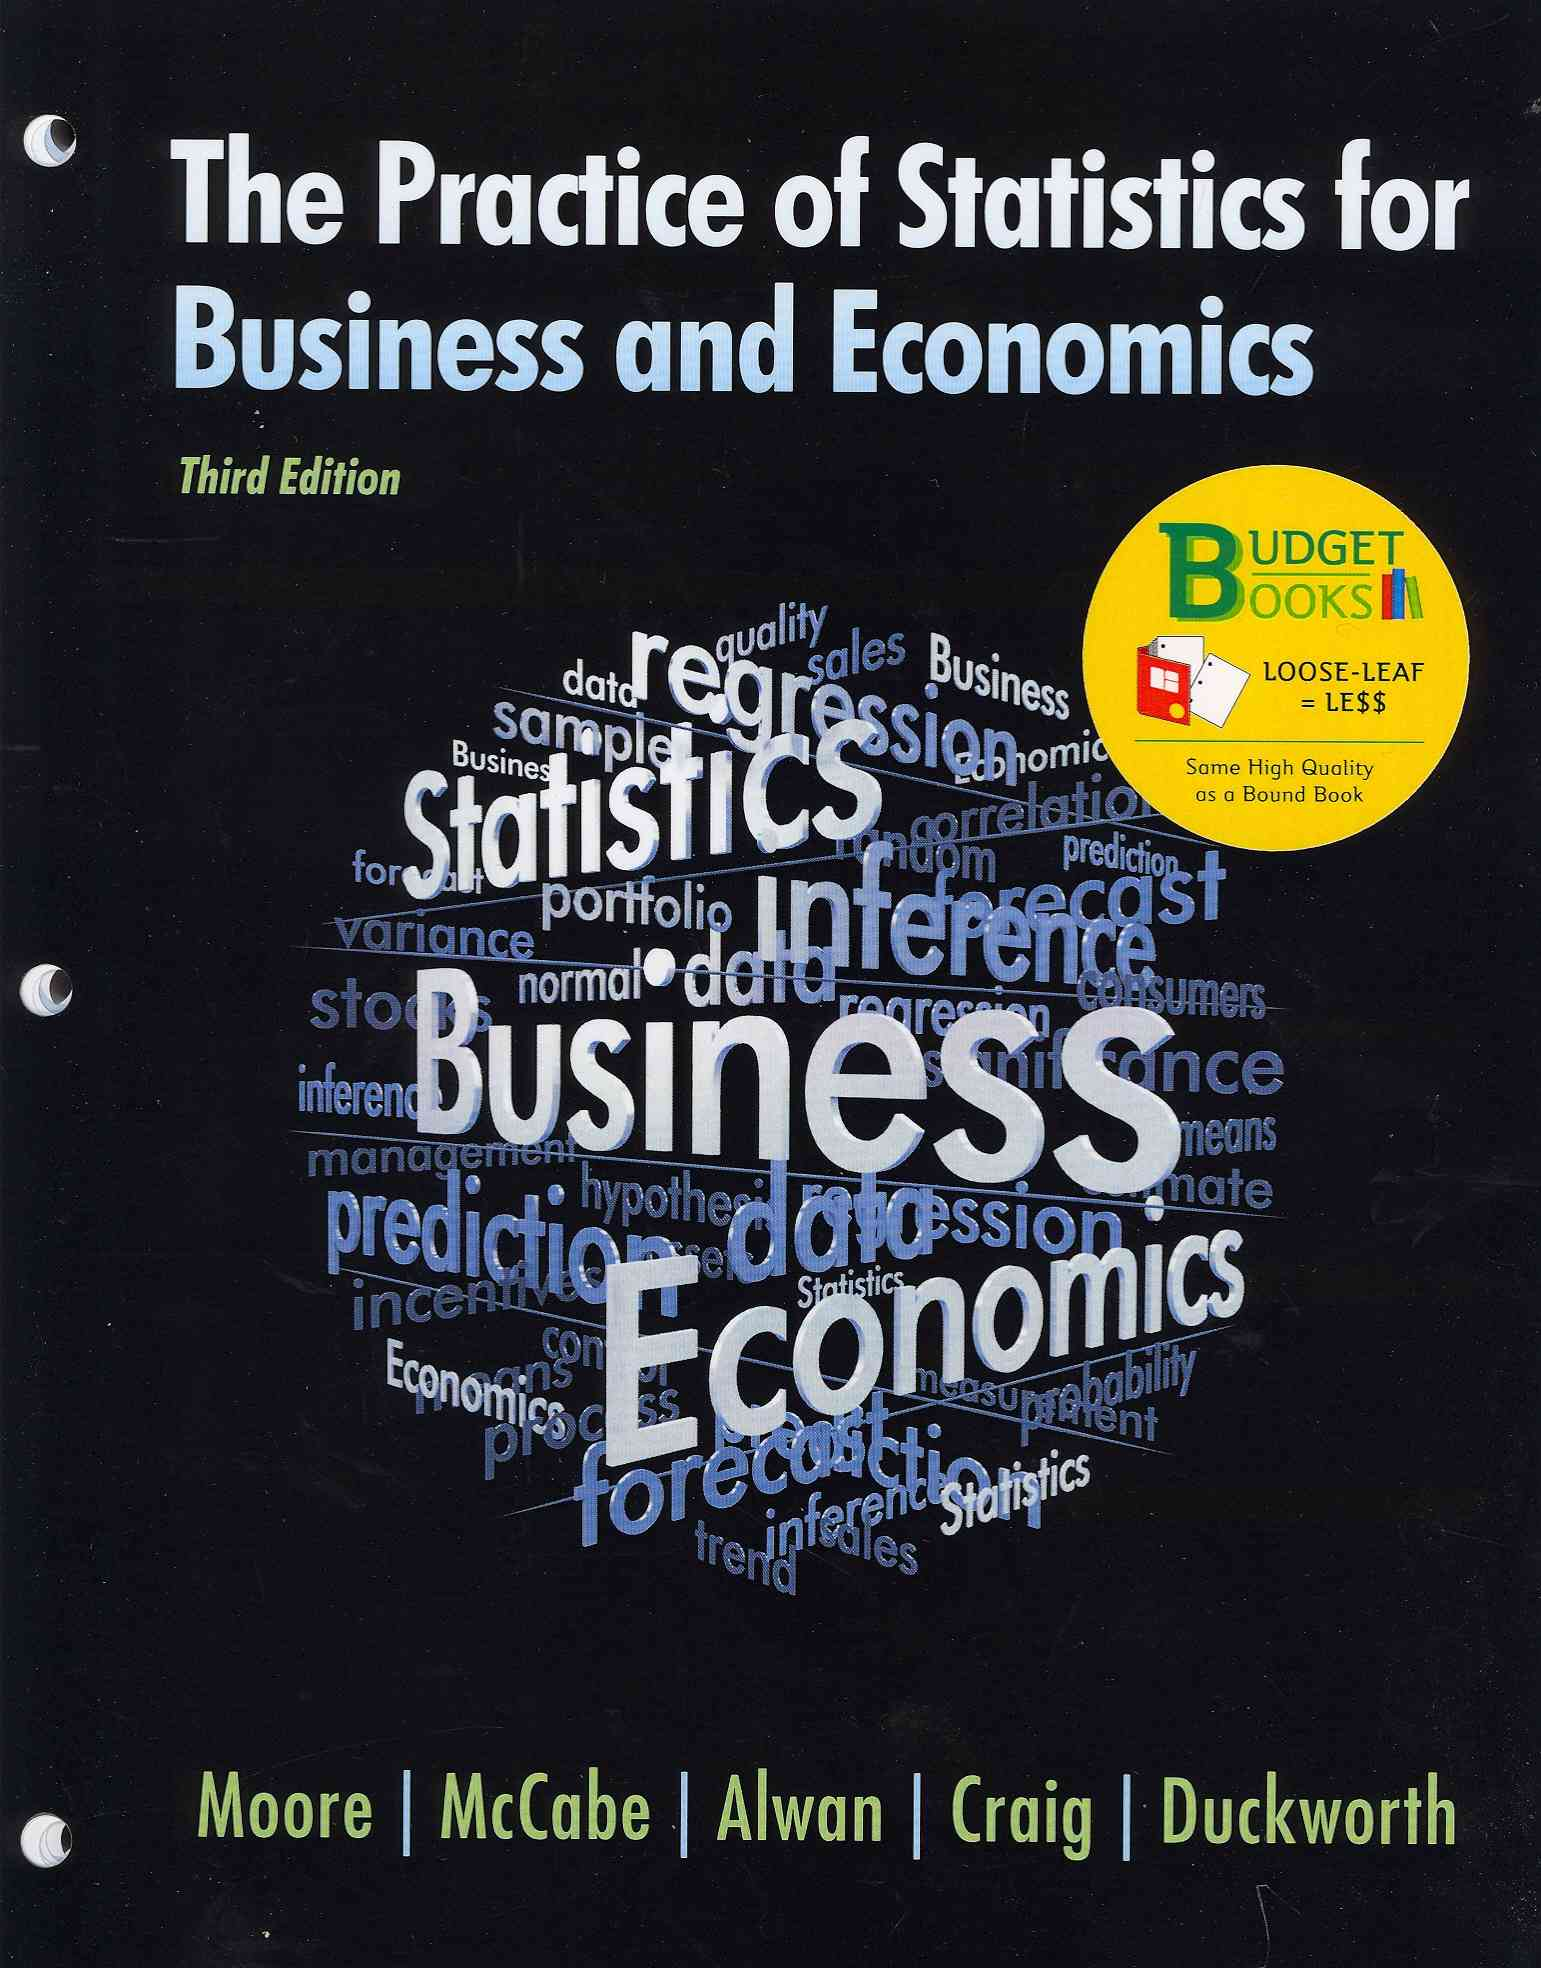 The Practice of Statistics Business and Economics